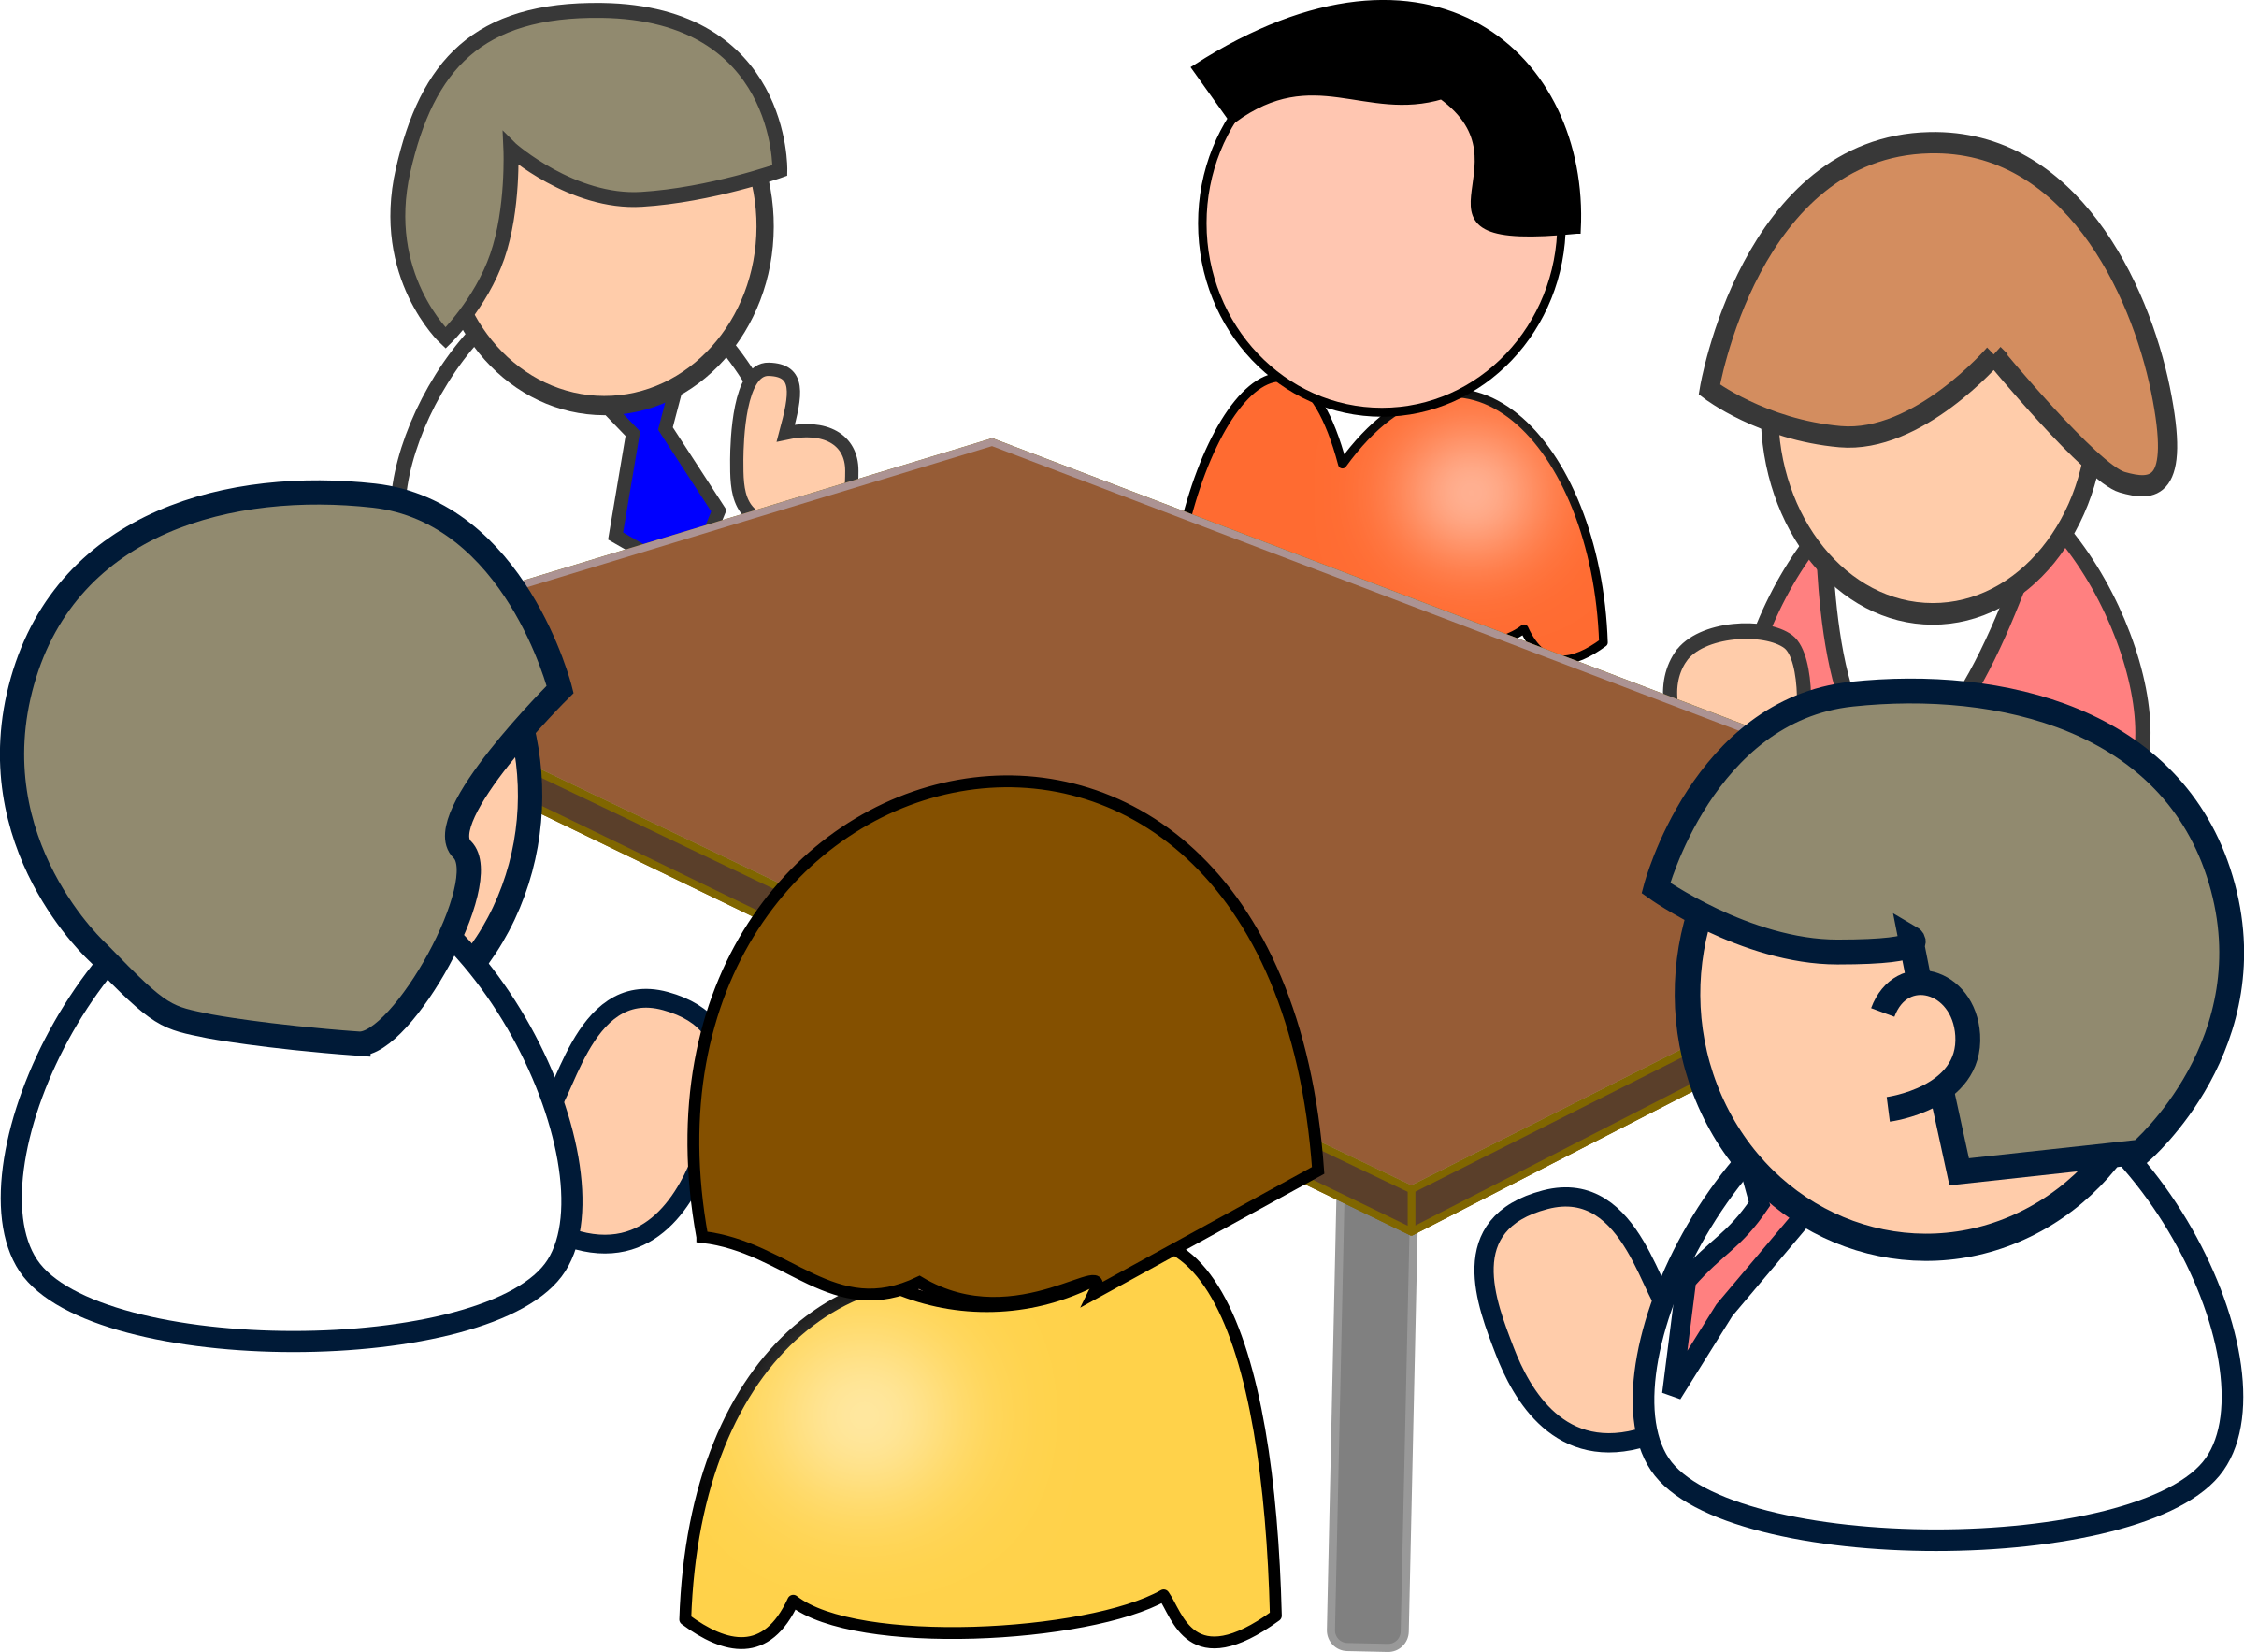 Meeting Clipart Transparent Background.